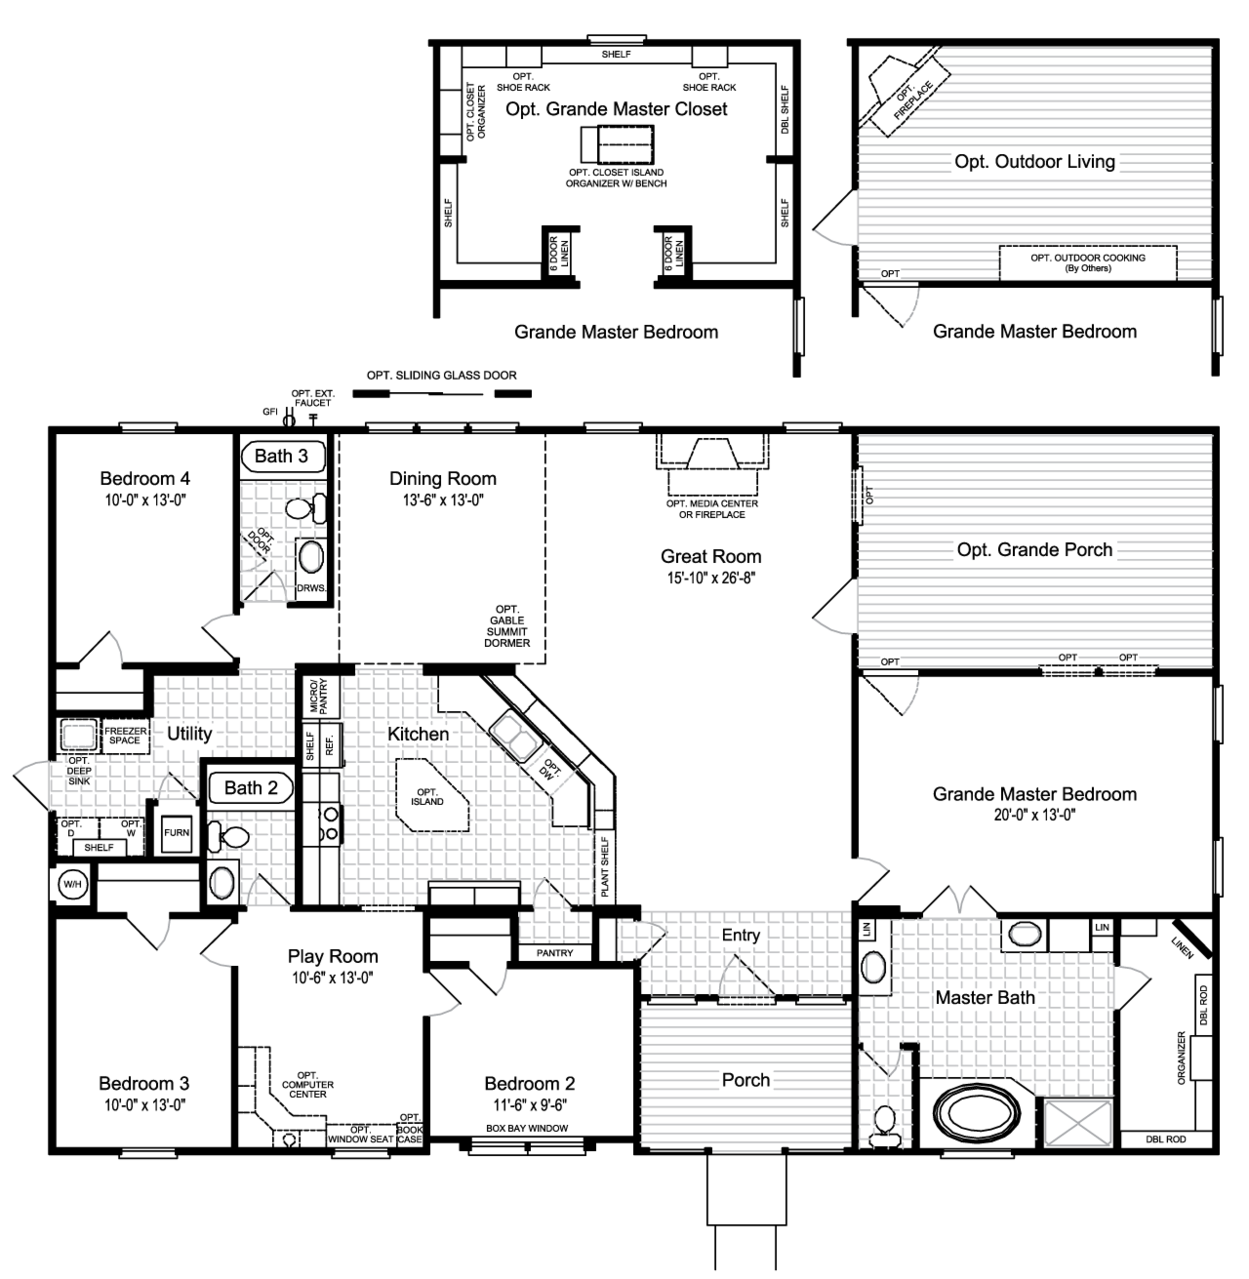 One Of My New Favorites As Palm Harbor Homes Is The Hacienda Ii Vrwd66a3 Floor Plan With Opt Grande Porch New House Plans Modular Home Floor Plans Floor Plans